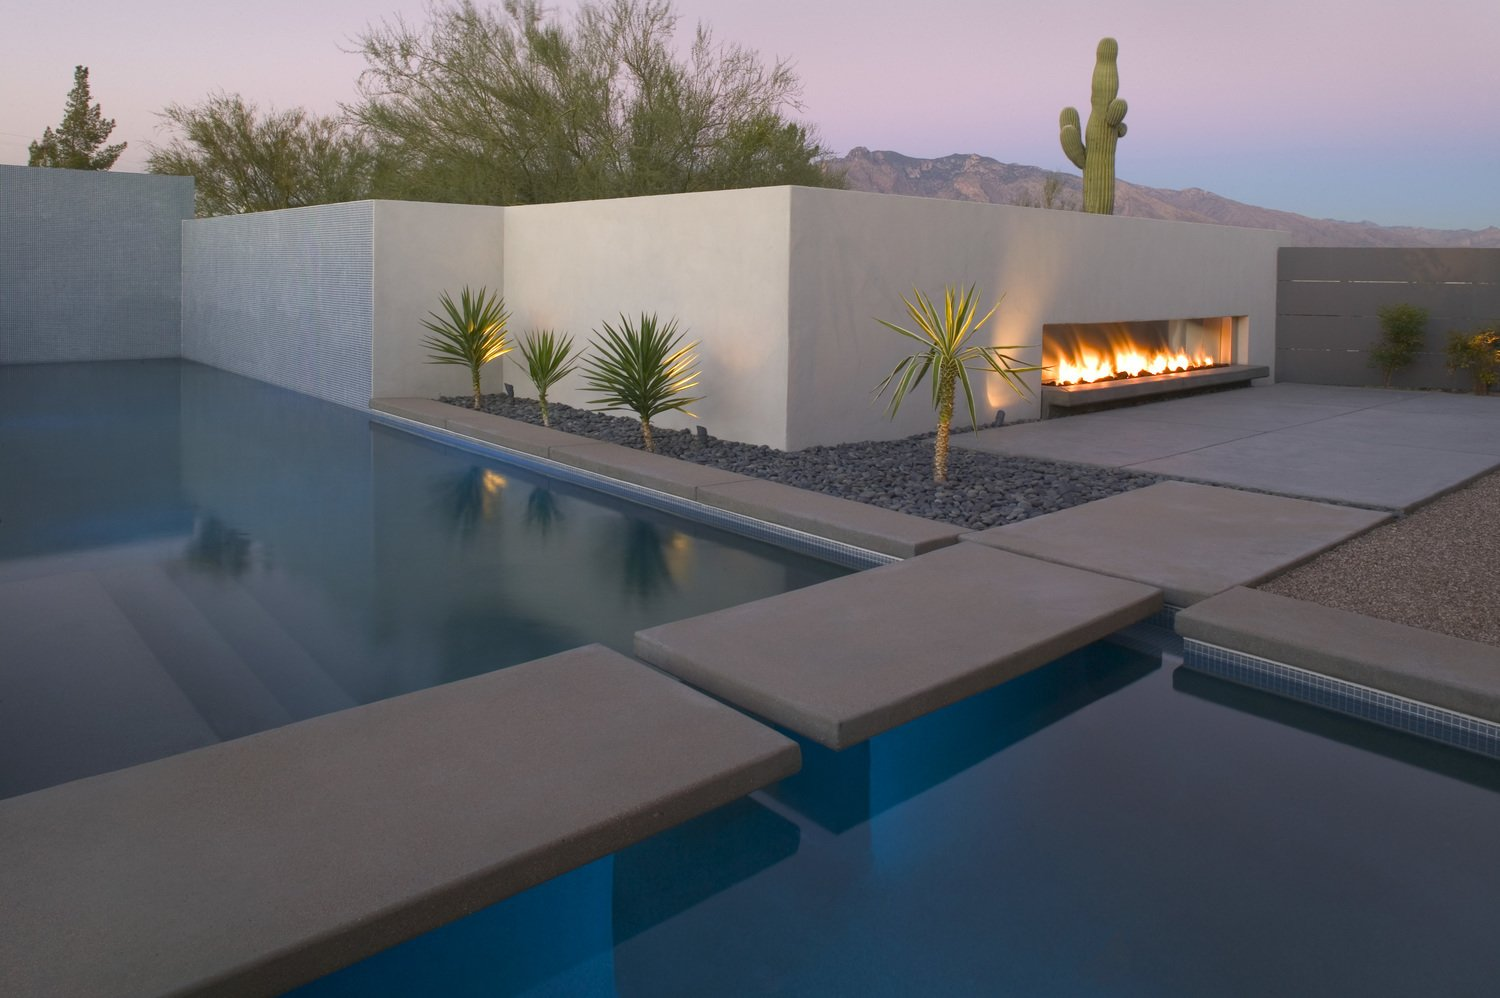 #modern #winterresidence #ibarrarosanodesignarchitects #architecture #exterior #fireplace #arizona #backyard   Photo 7 of 25 in 25 Blissful Backyards from Winter Residence Remodel